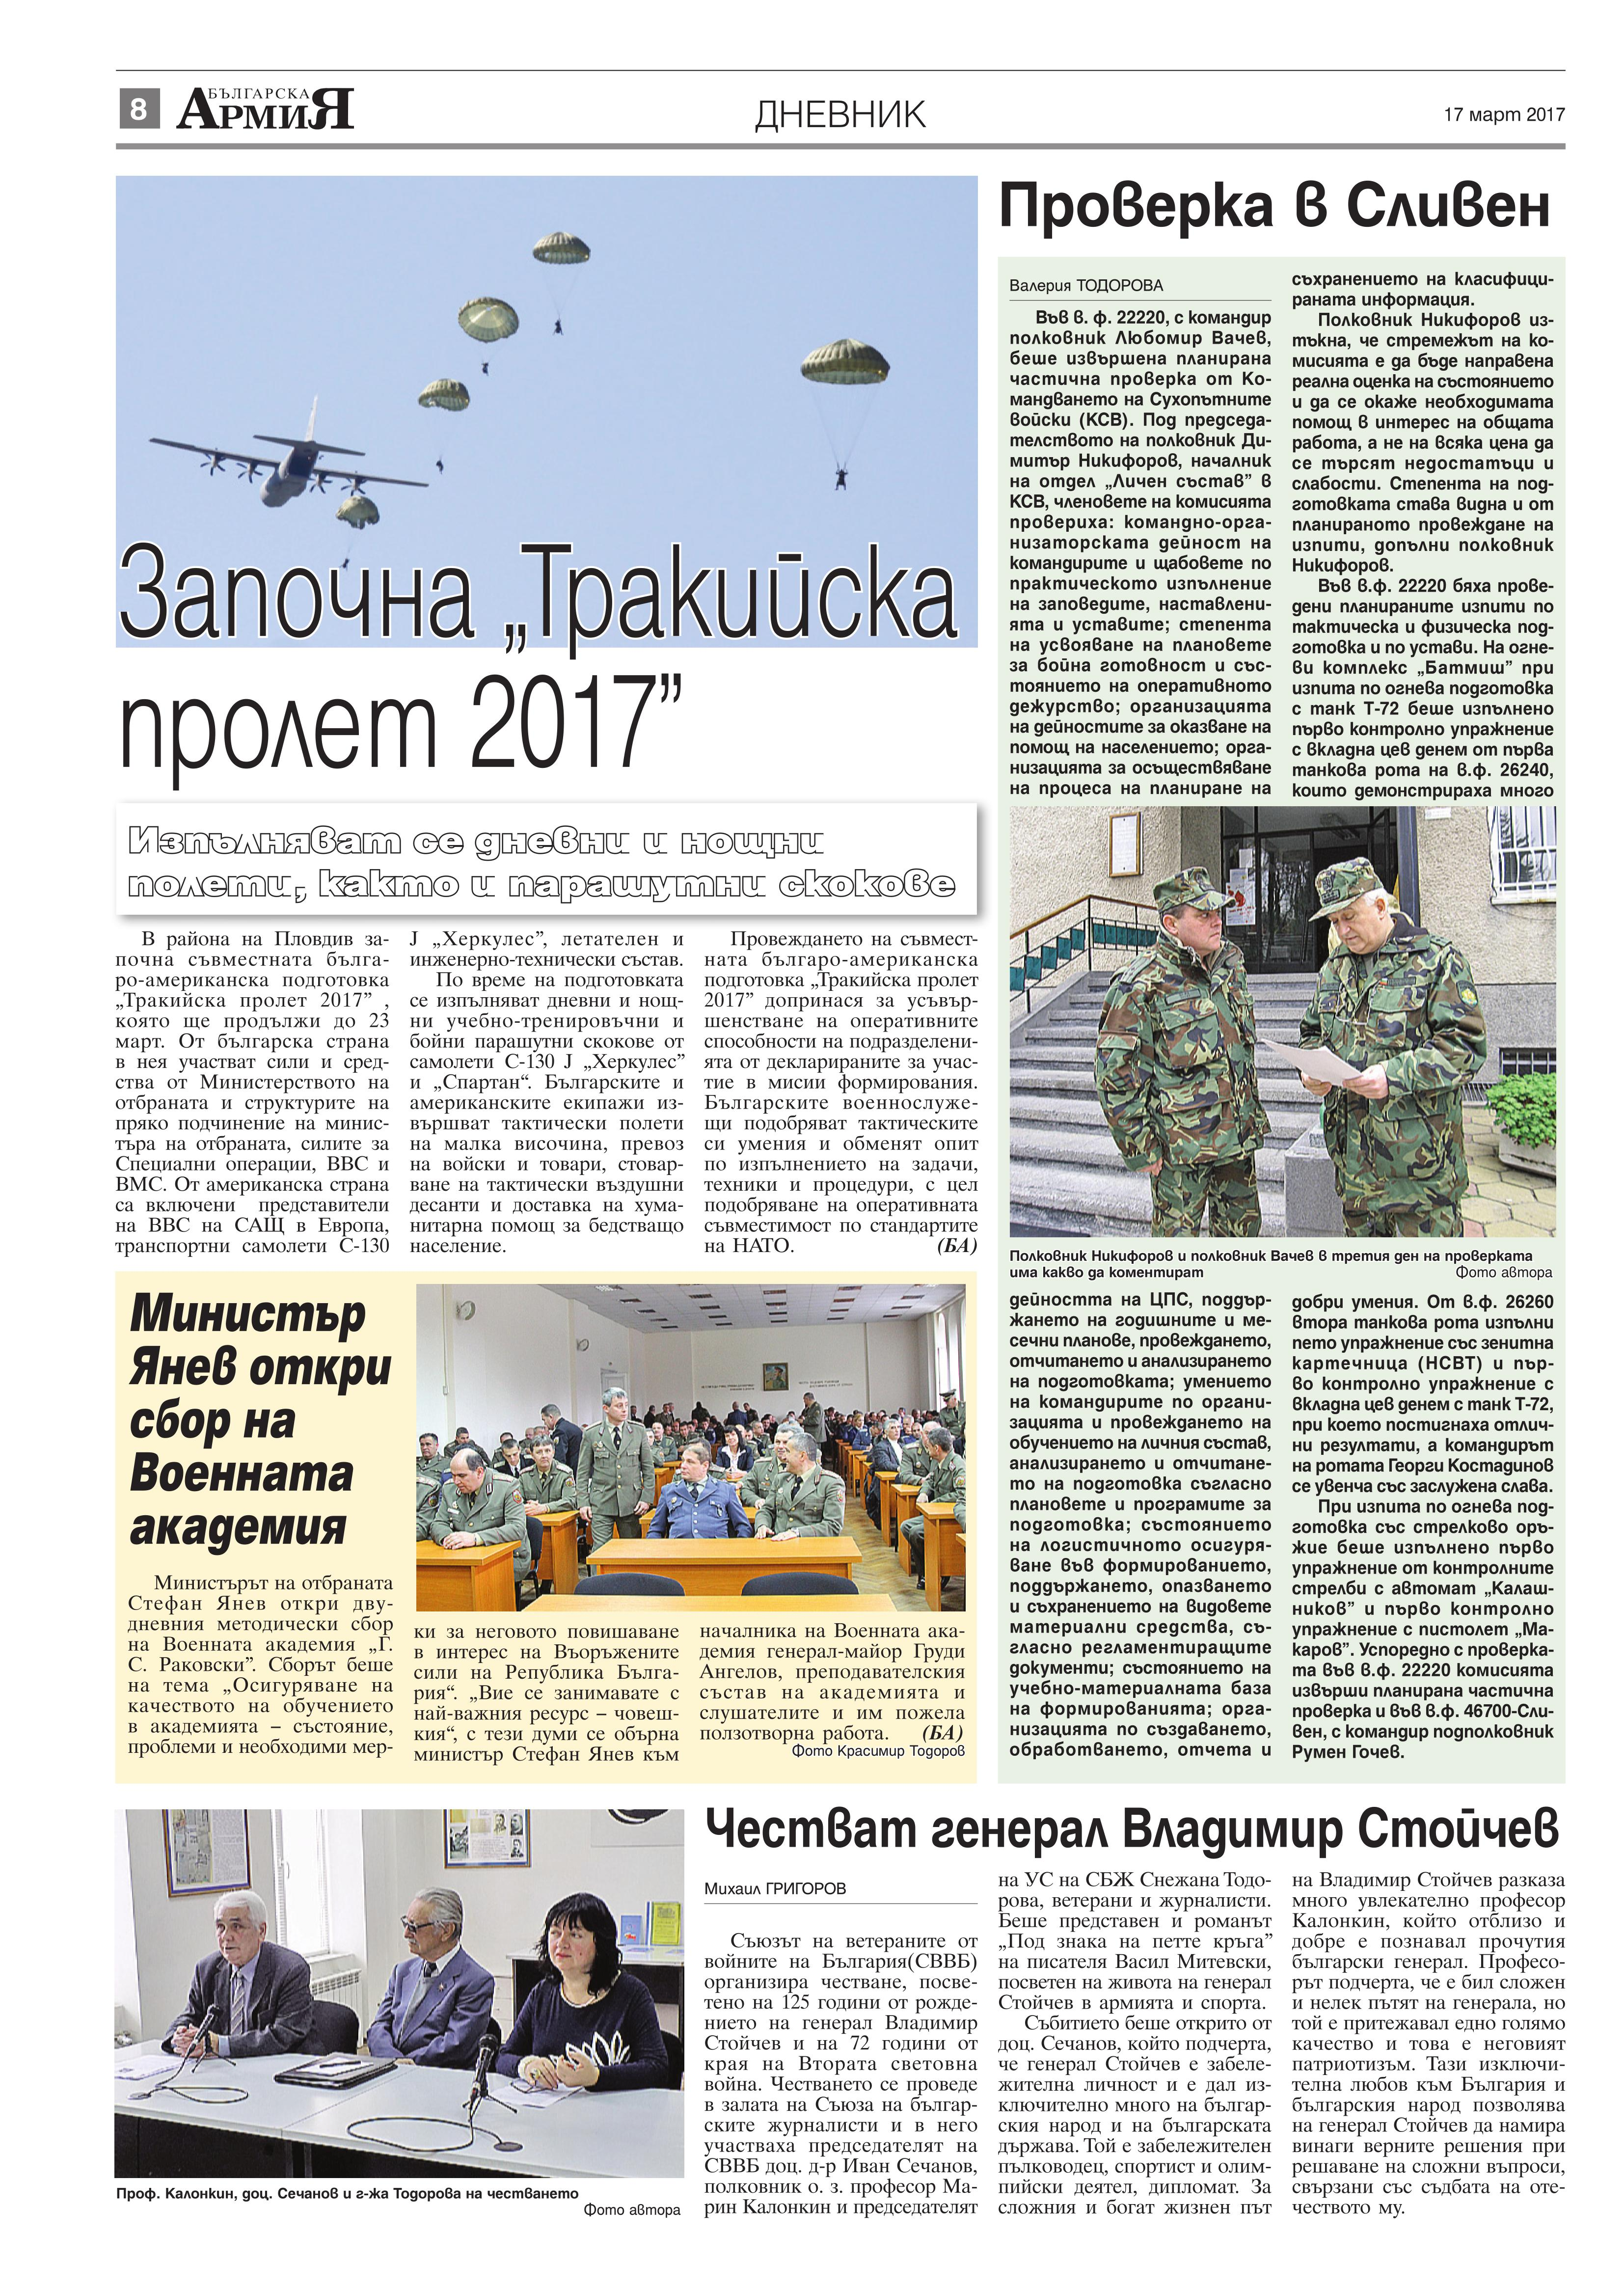 https://www.armymedia.bg/wp-content/uploads/2015/06/08.page1_-17.jpg